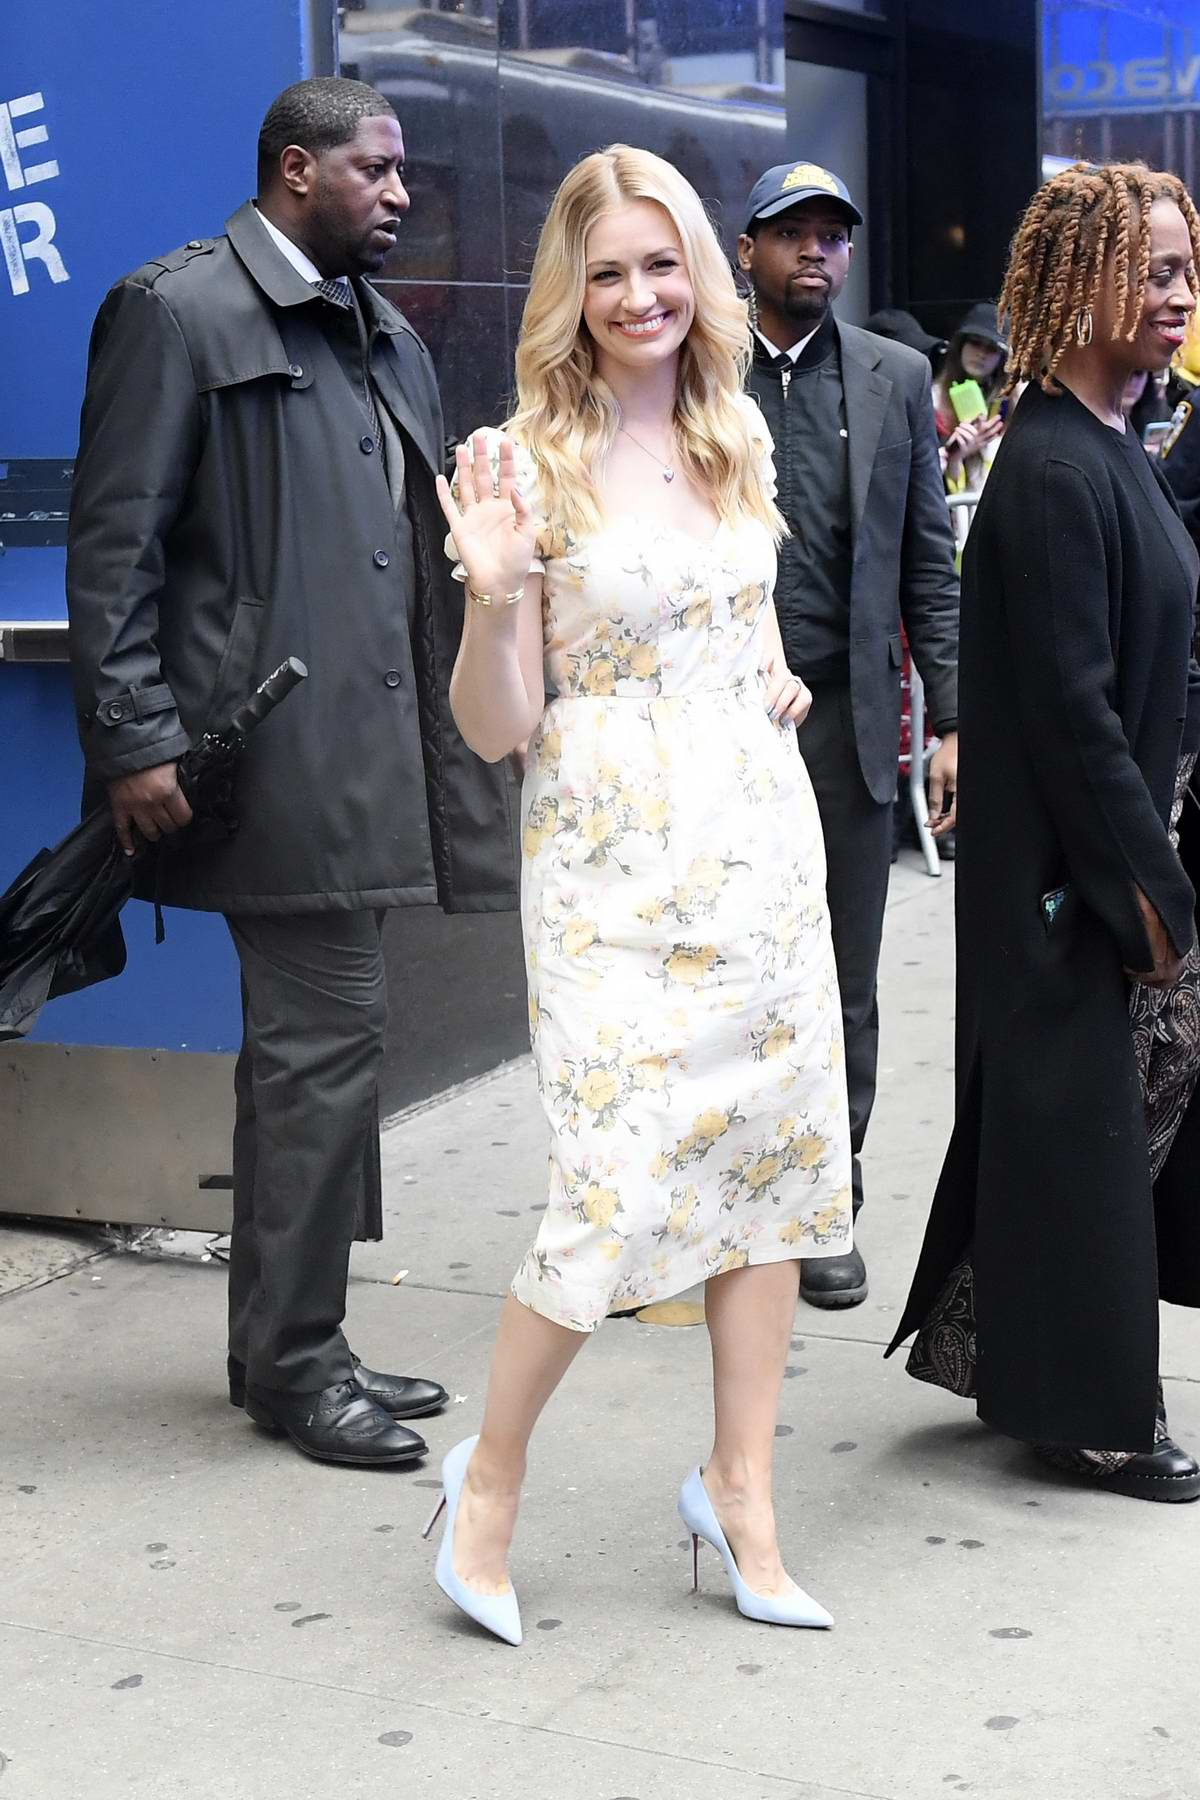 Beth Behrs is all smiles as she leaves ABC Studios in New York City